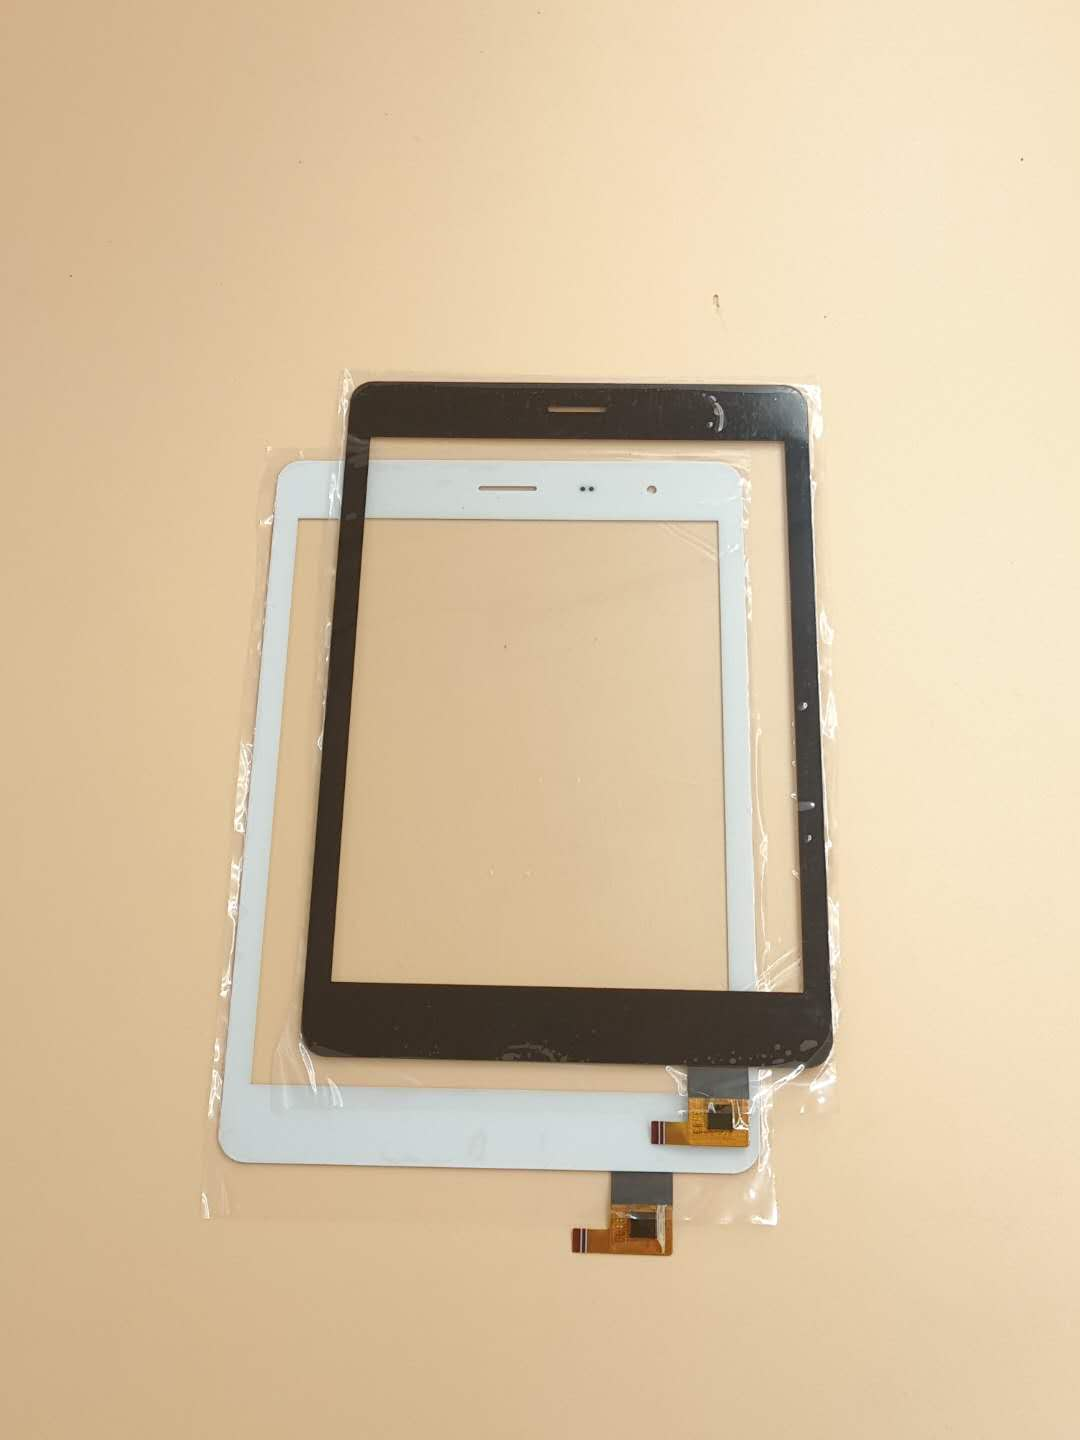 7.85 Inch For Explay Art 3G  Replacement Tablet Touch Panel  Touch Screen Digitizer Glass Free Shipping